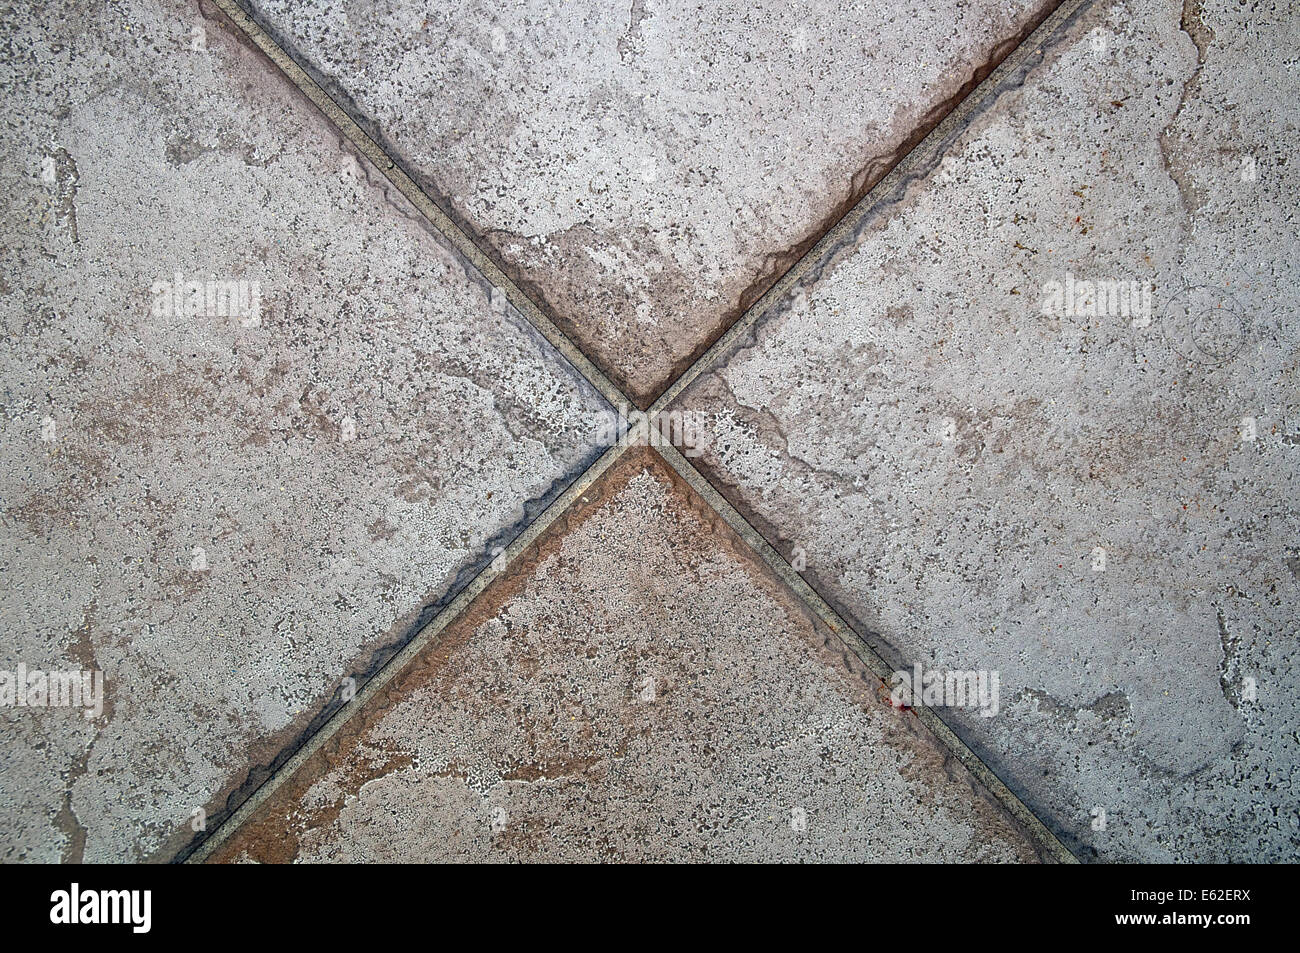 Large stone floor tiles joining together forming the letter x large stone floor tiles joining together forming the letter x dailygadgetfo Image collections